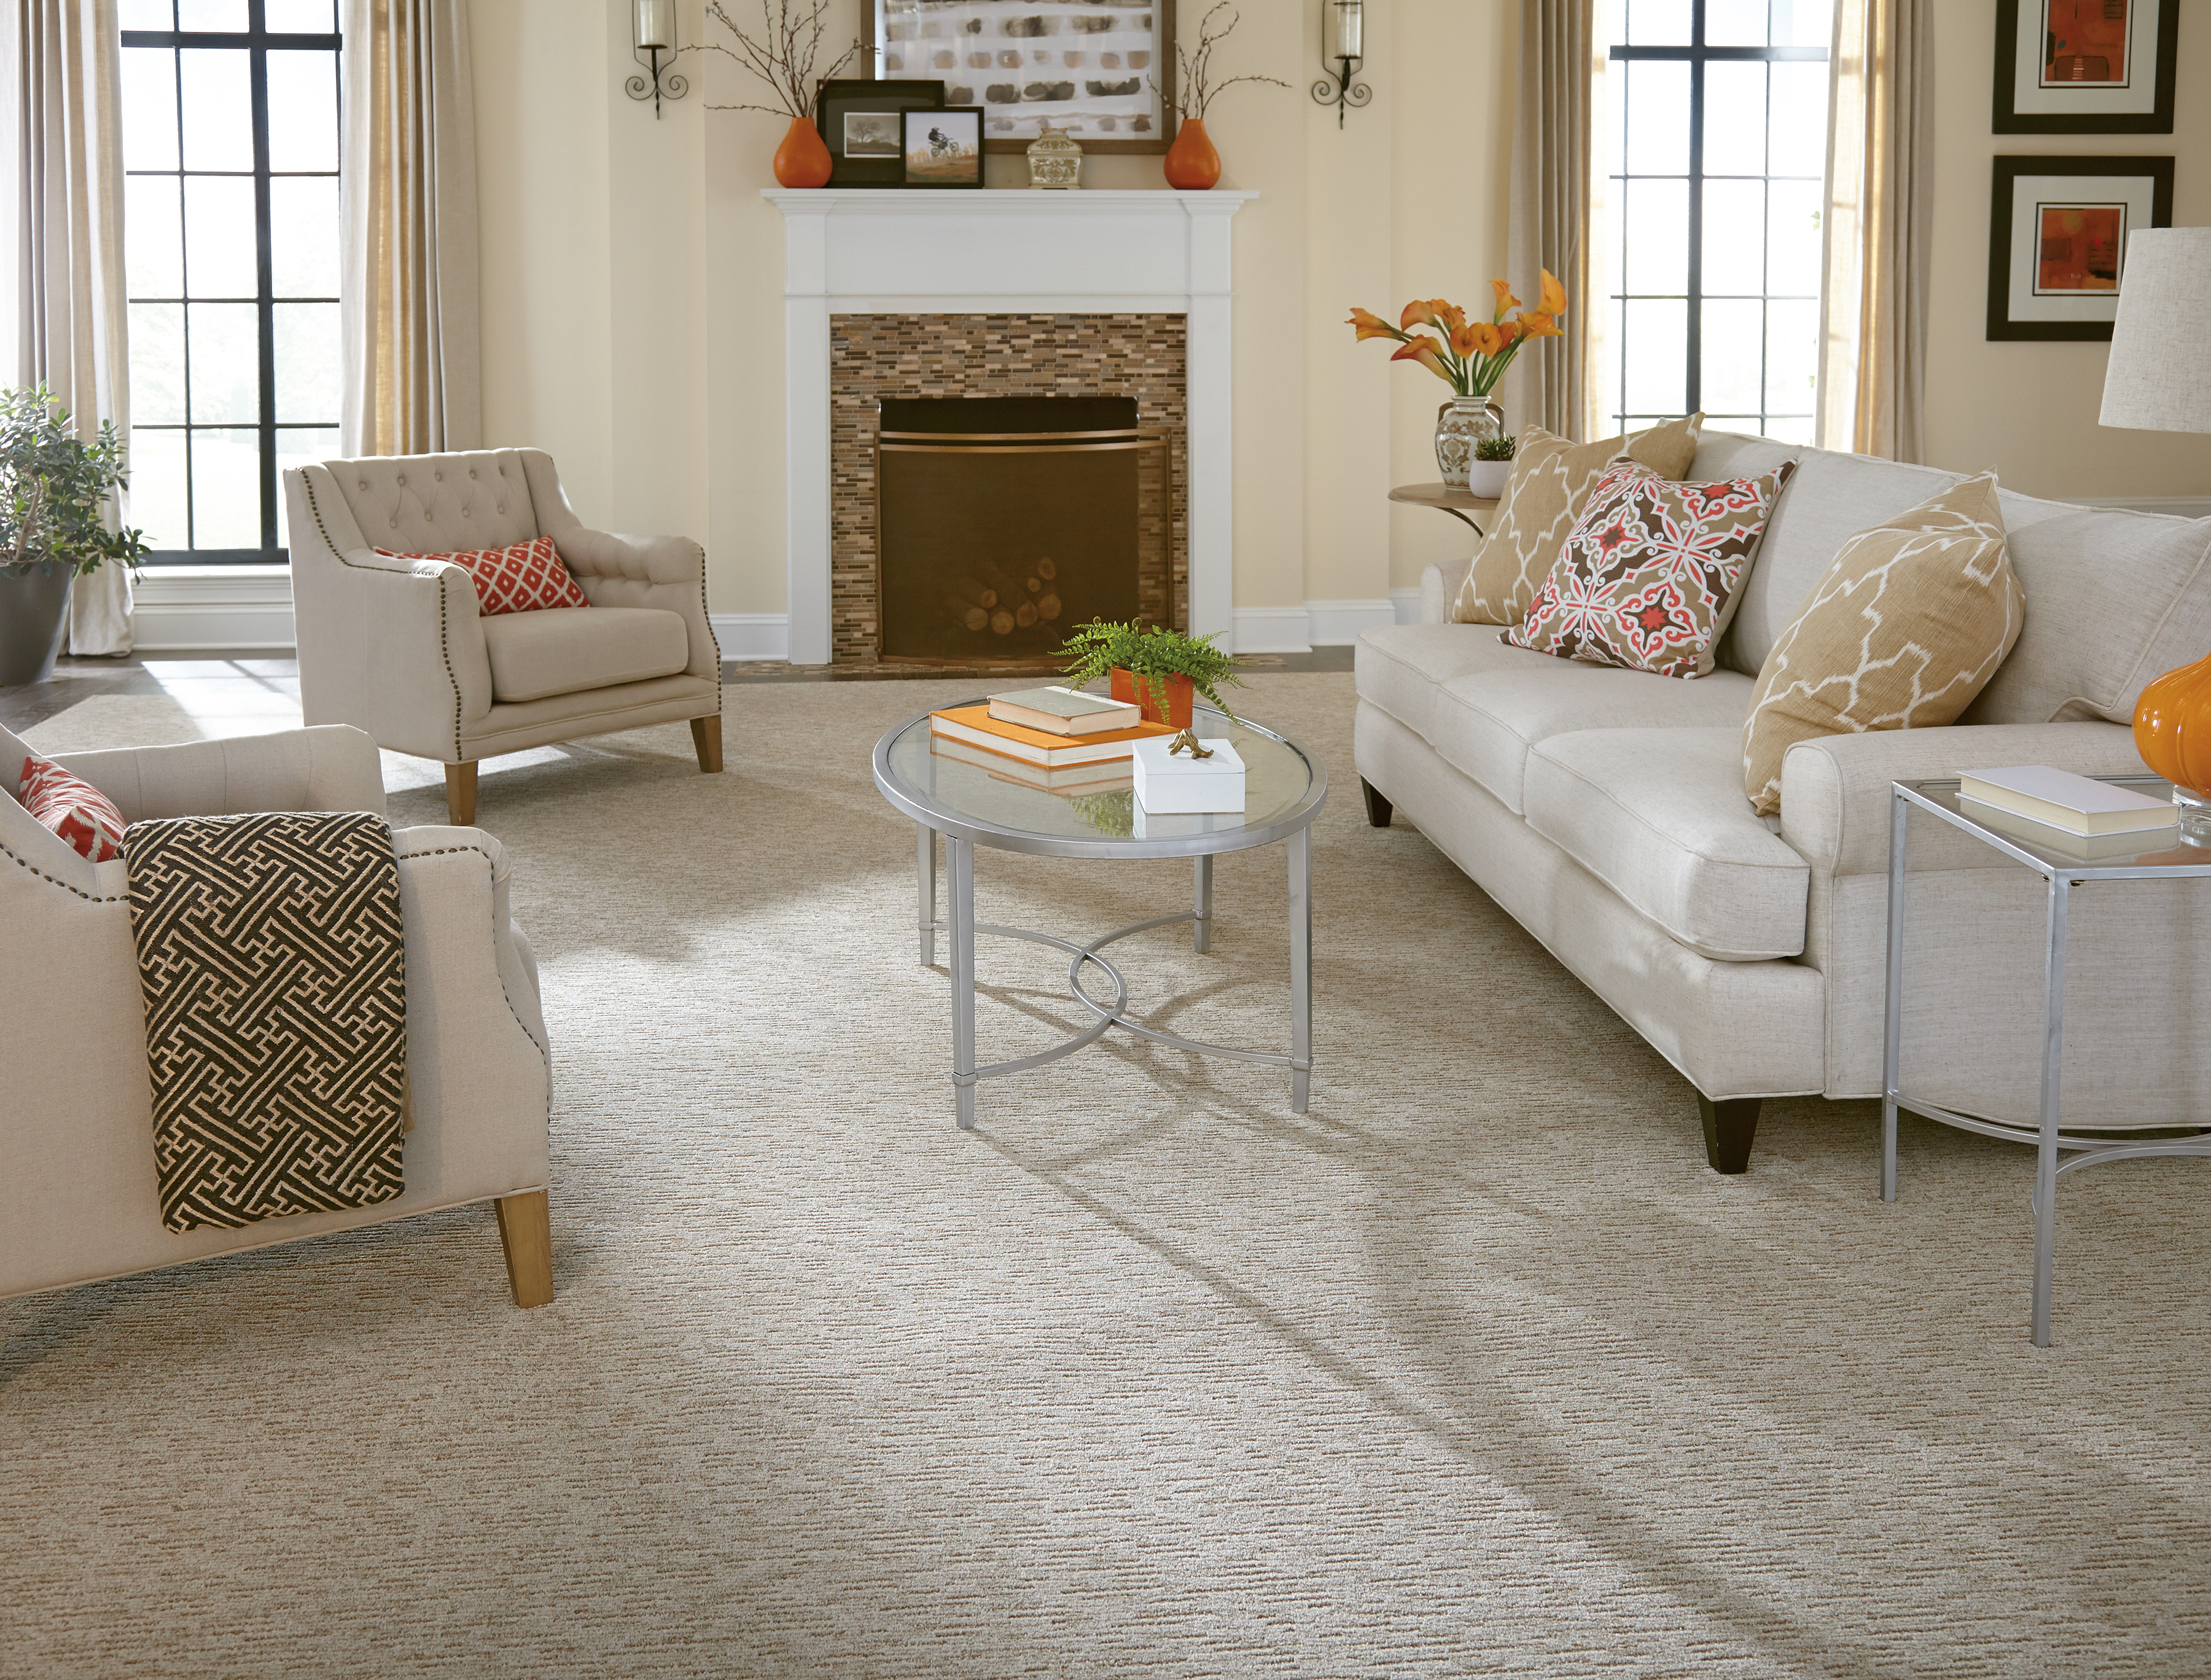 Get this beautiful Mohawk Smartstrand patterned carpet right now for over 50% off in the Remnant Room Clearance Center!